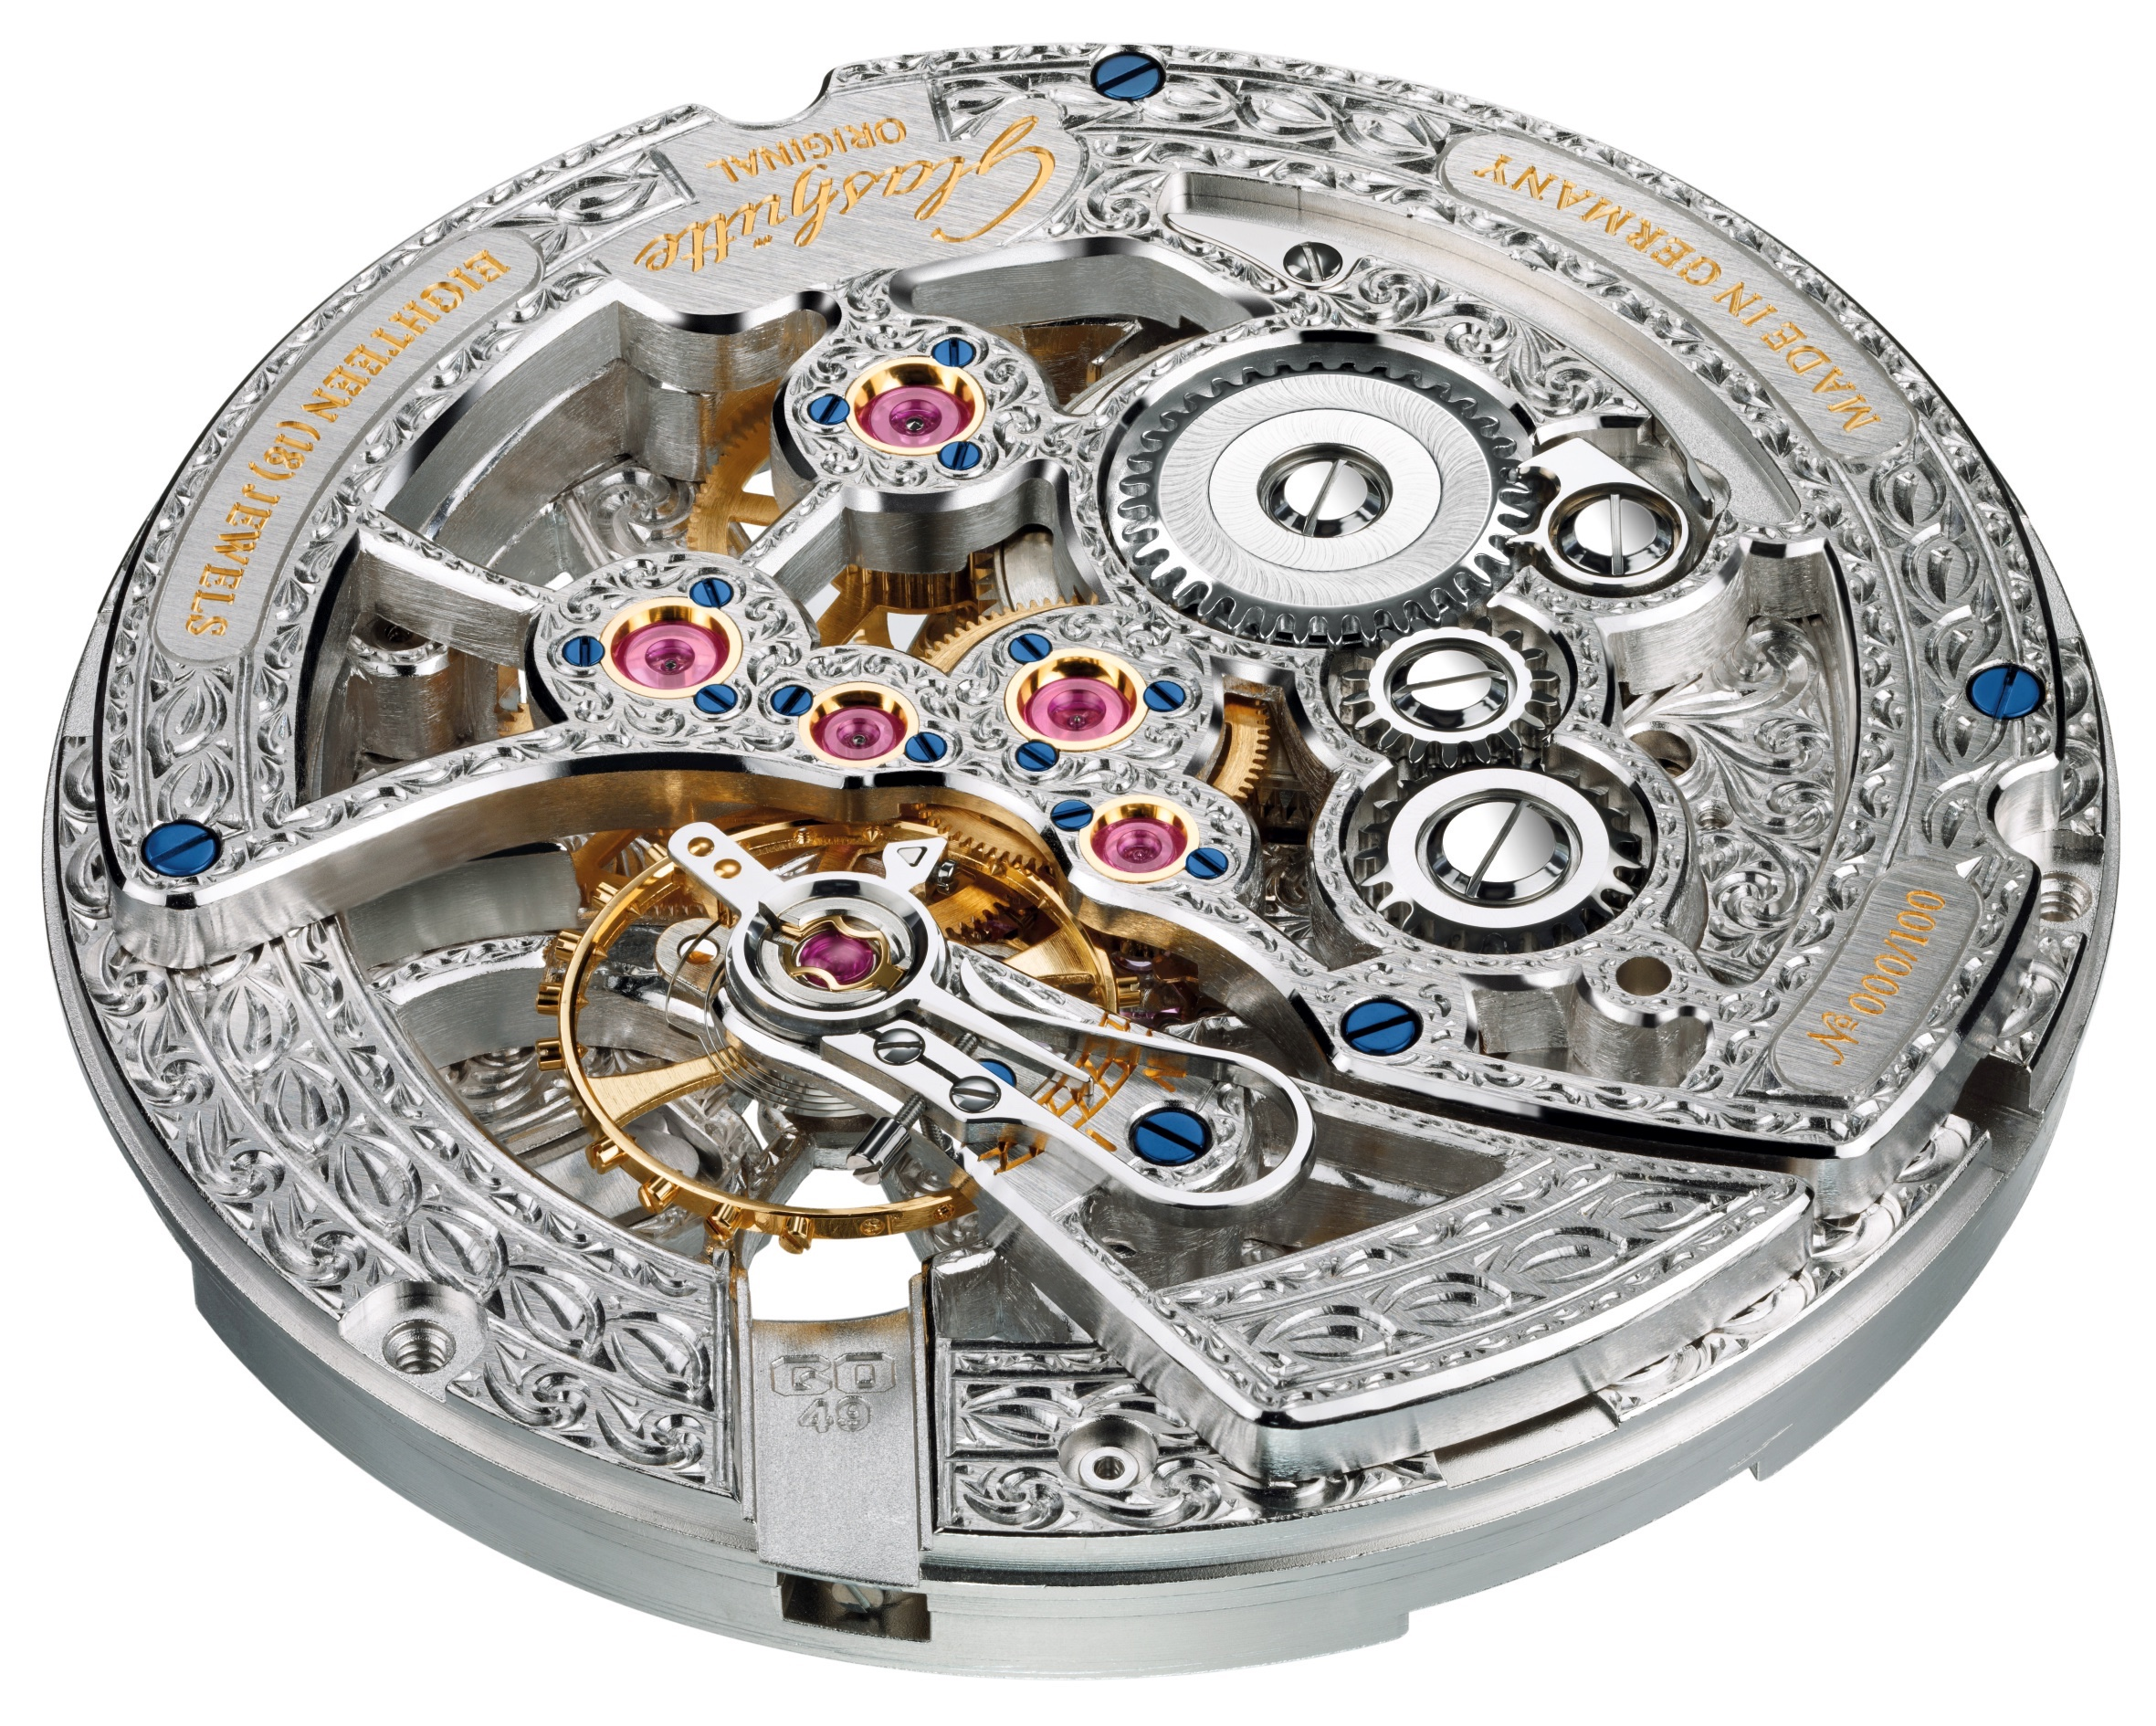 glashutte-original-senator-skeletonized-calibre-49-13